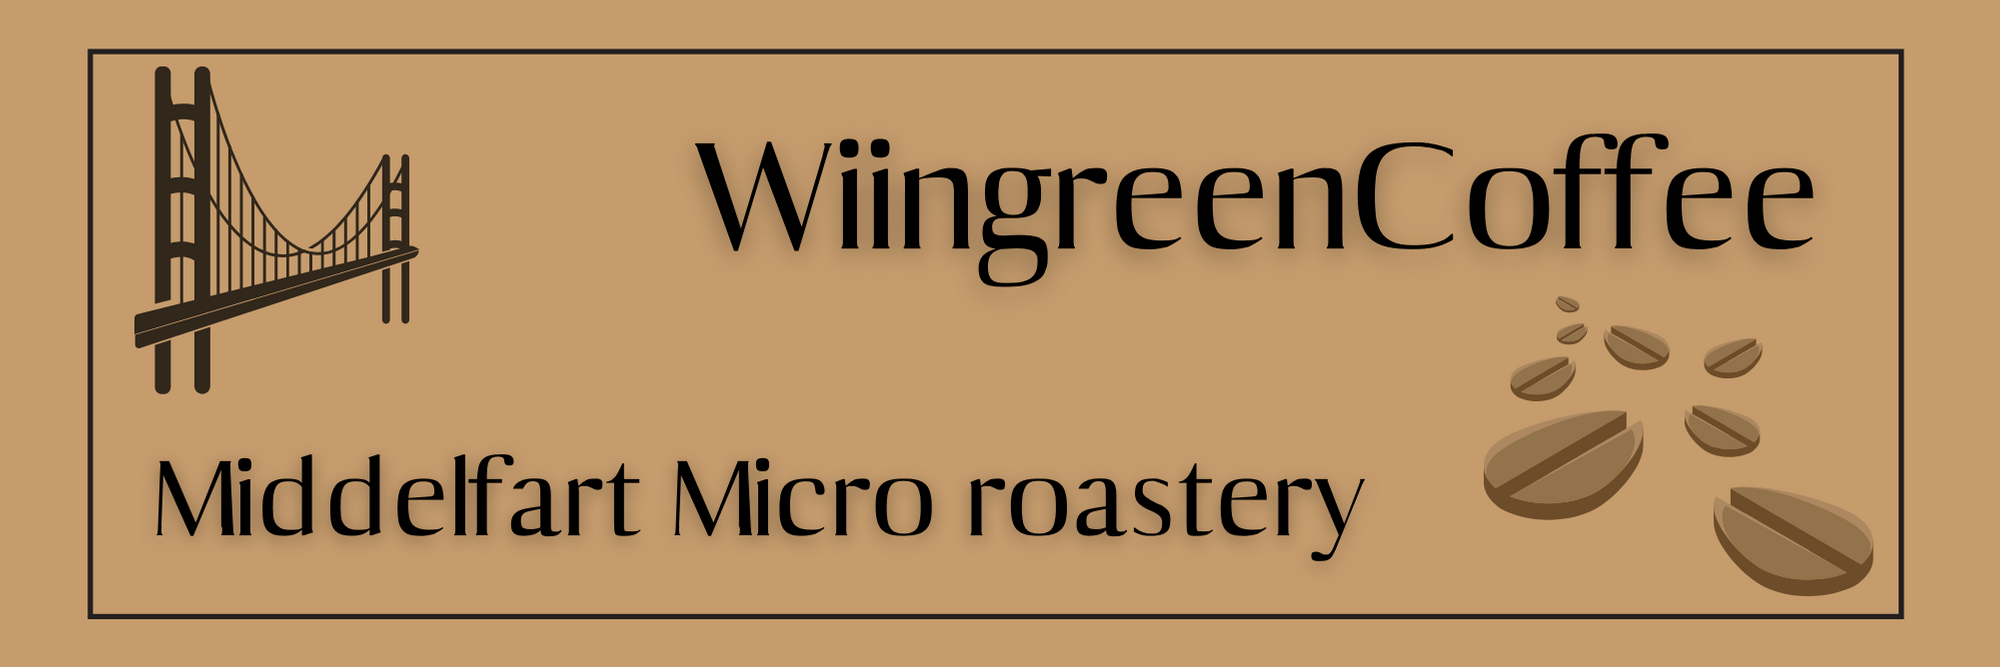 wiingreencoffee